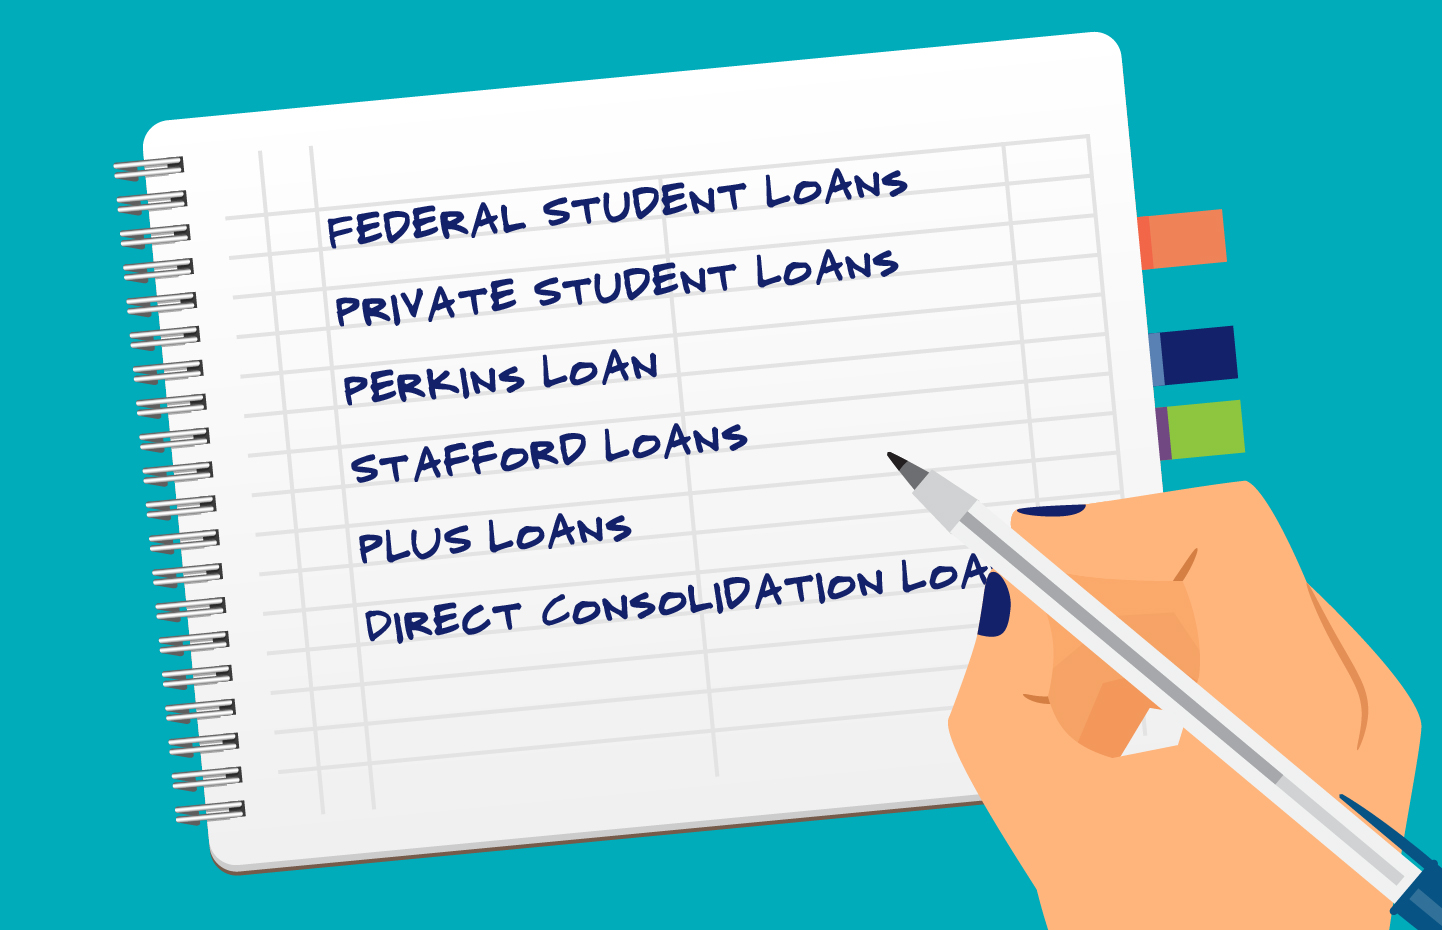 Types of student loan aid